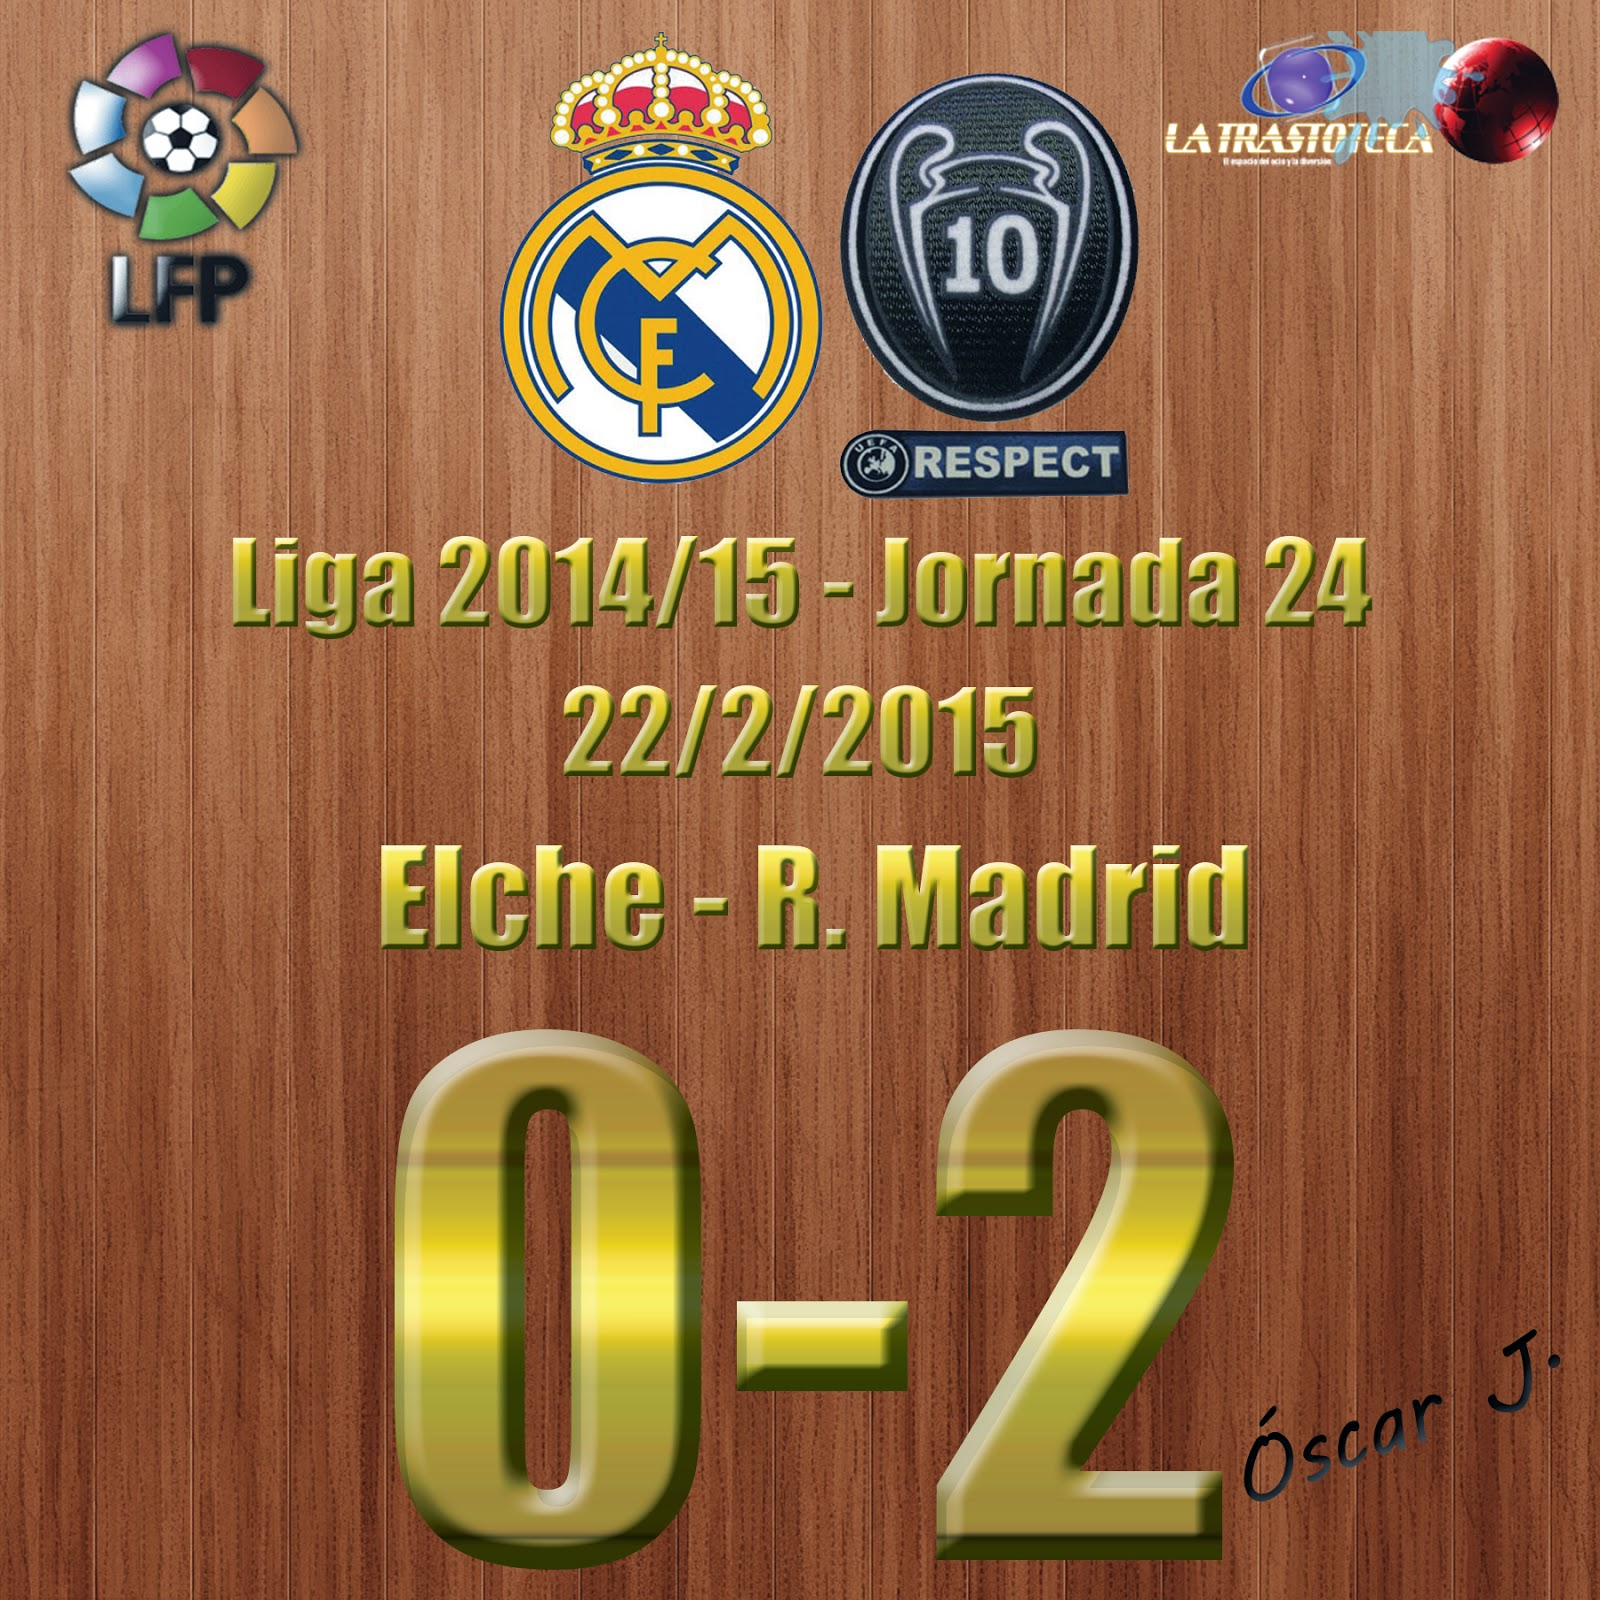 Elche 0- 2 Real Madrid - Liga 2014/15 - Jornada 24 - (22/2/2015)